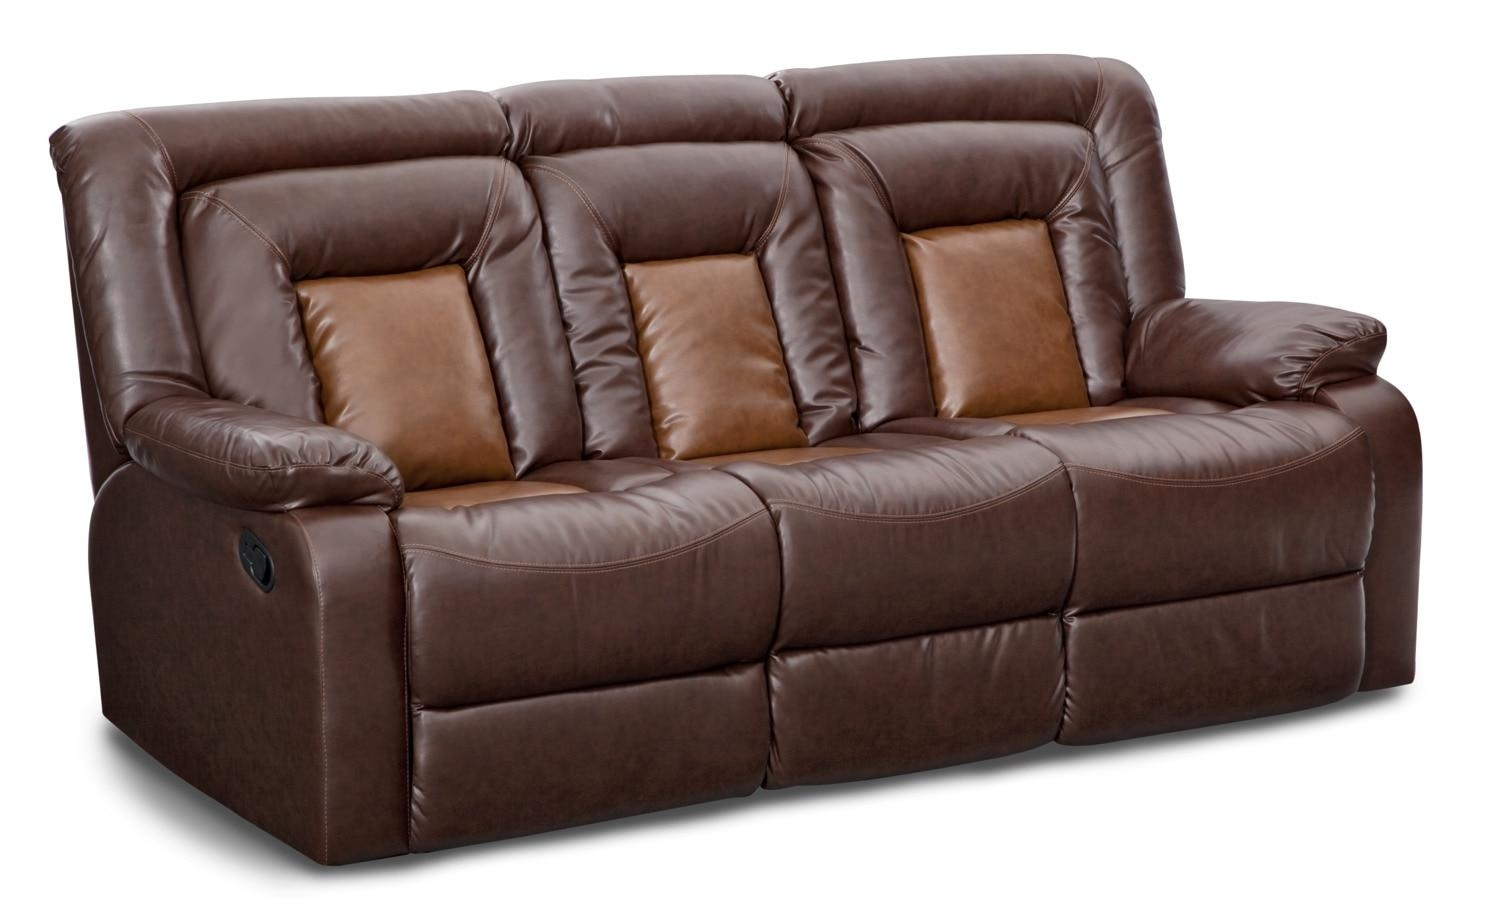 Sofas & Couches | Living Room Seating | American Signature Furniture Regarding Sofas With Consoles (Image 3 of 20)